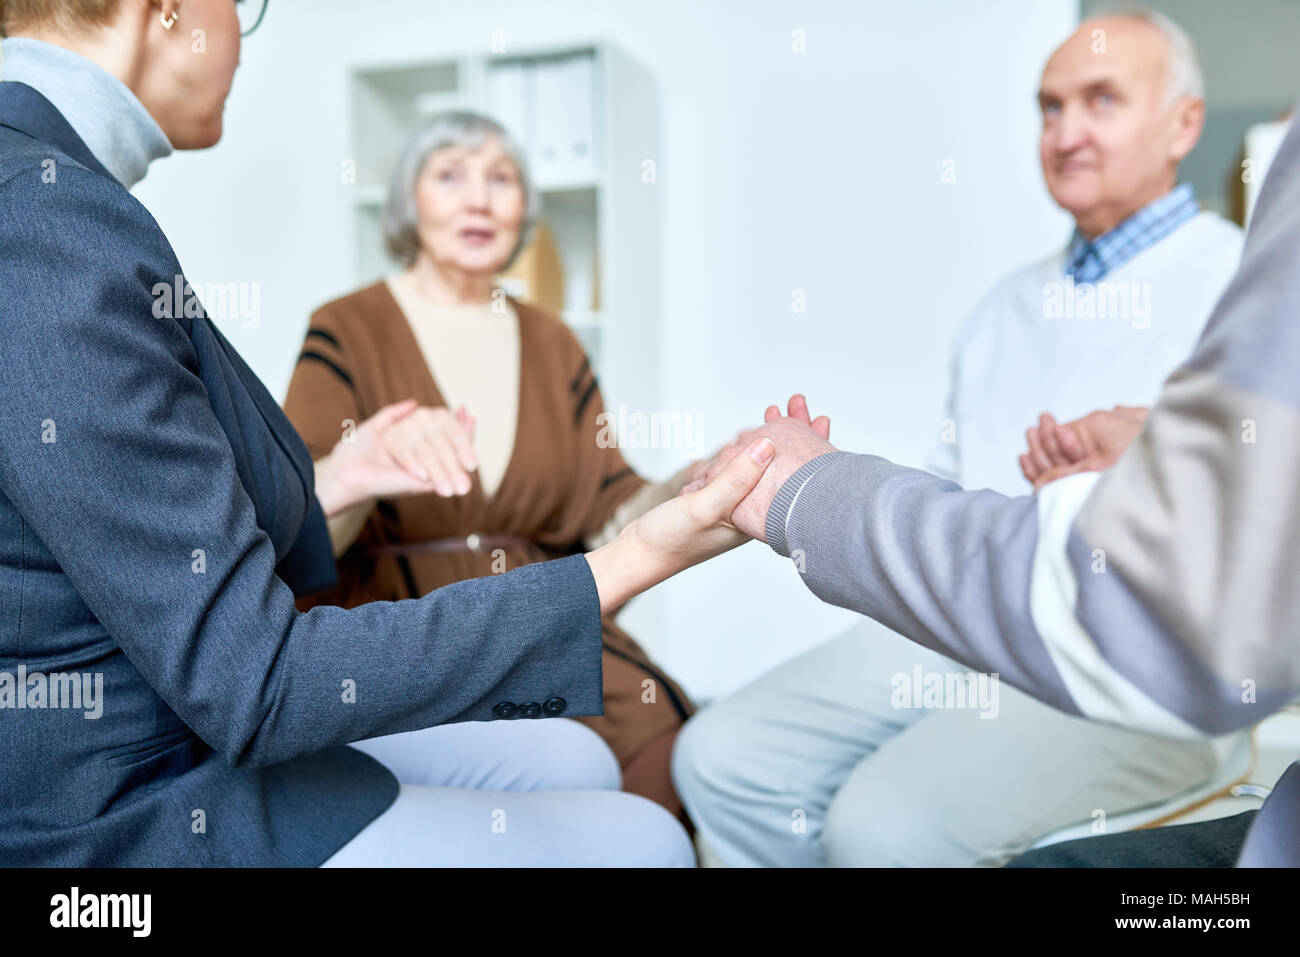 Support Therapy Session for Senior People - Stock Image